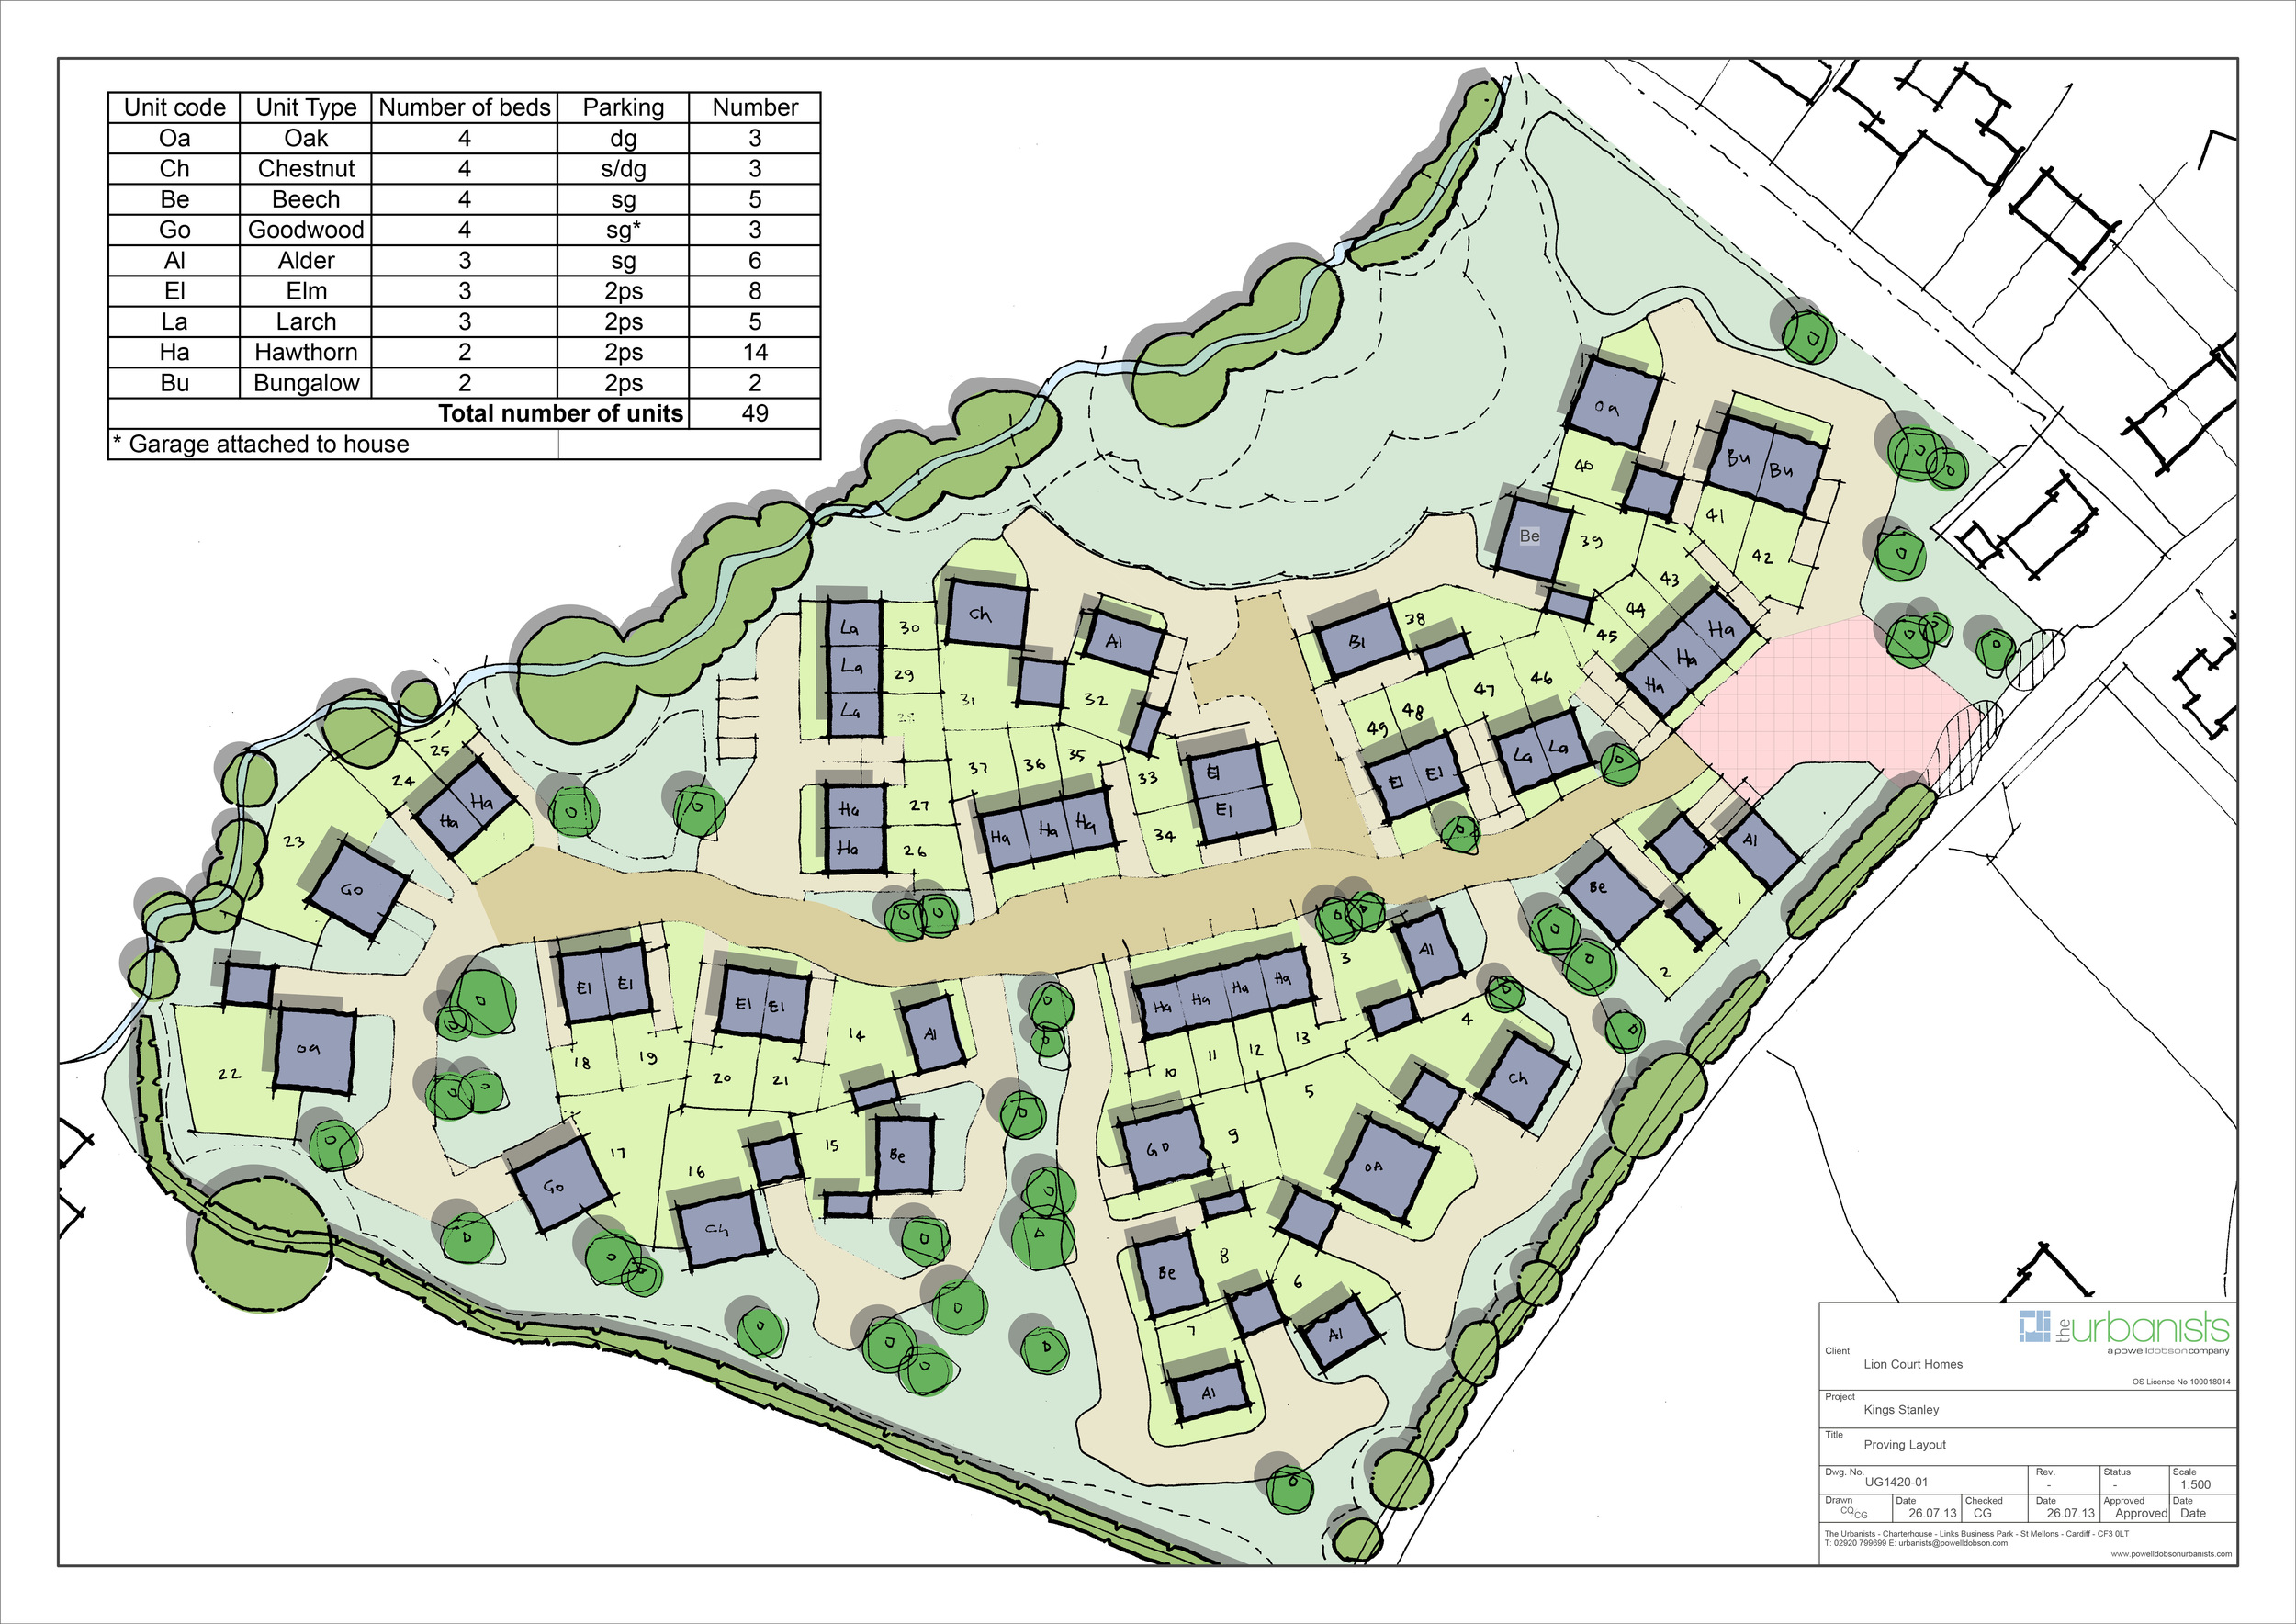 Masterplan for 49 homes in Gloucestershire